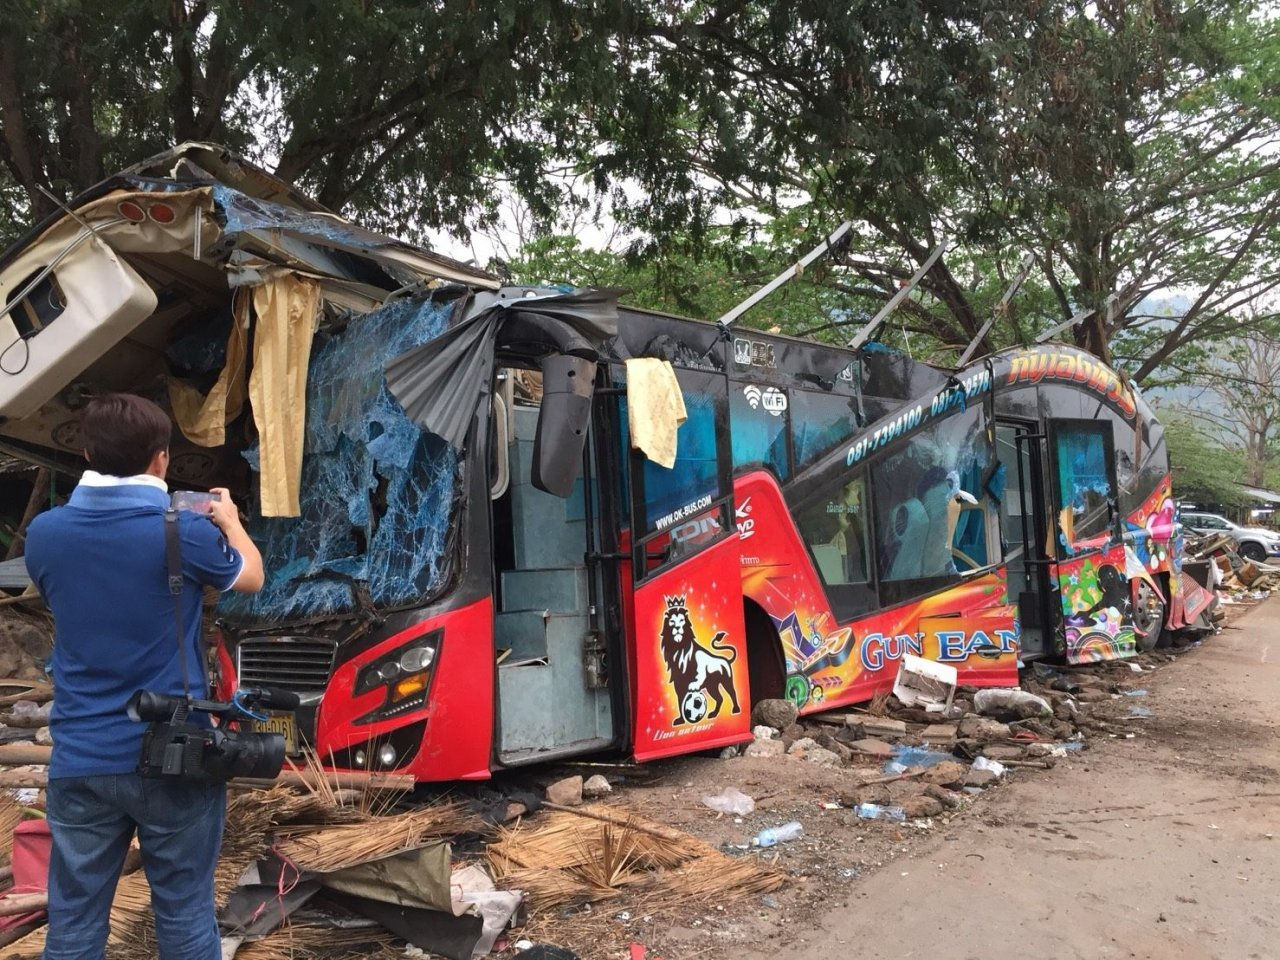 Bus driver admits taking methamphetamine before fatal journey | The Thaiger